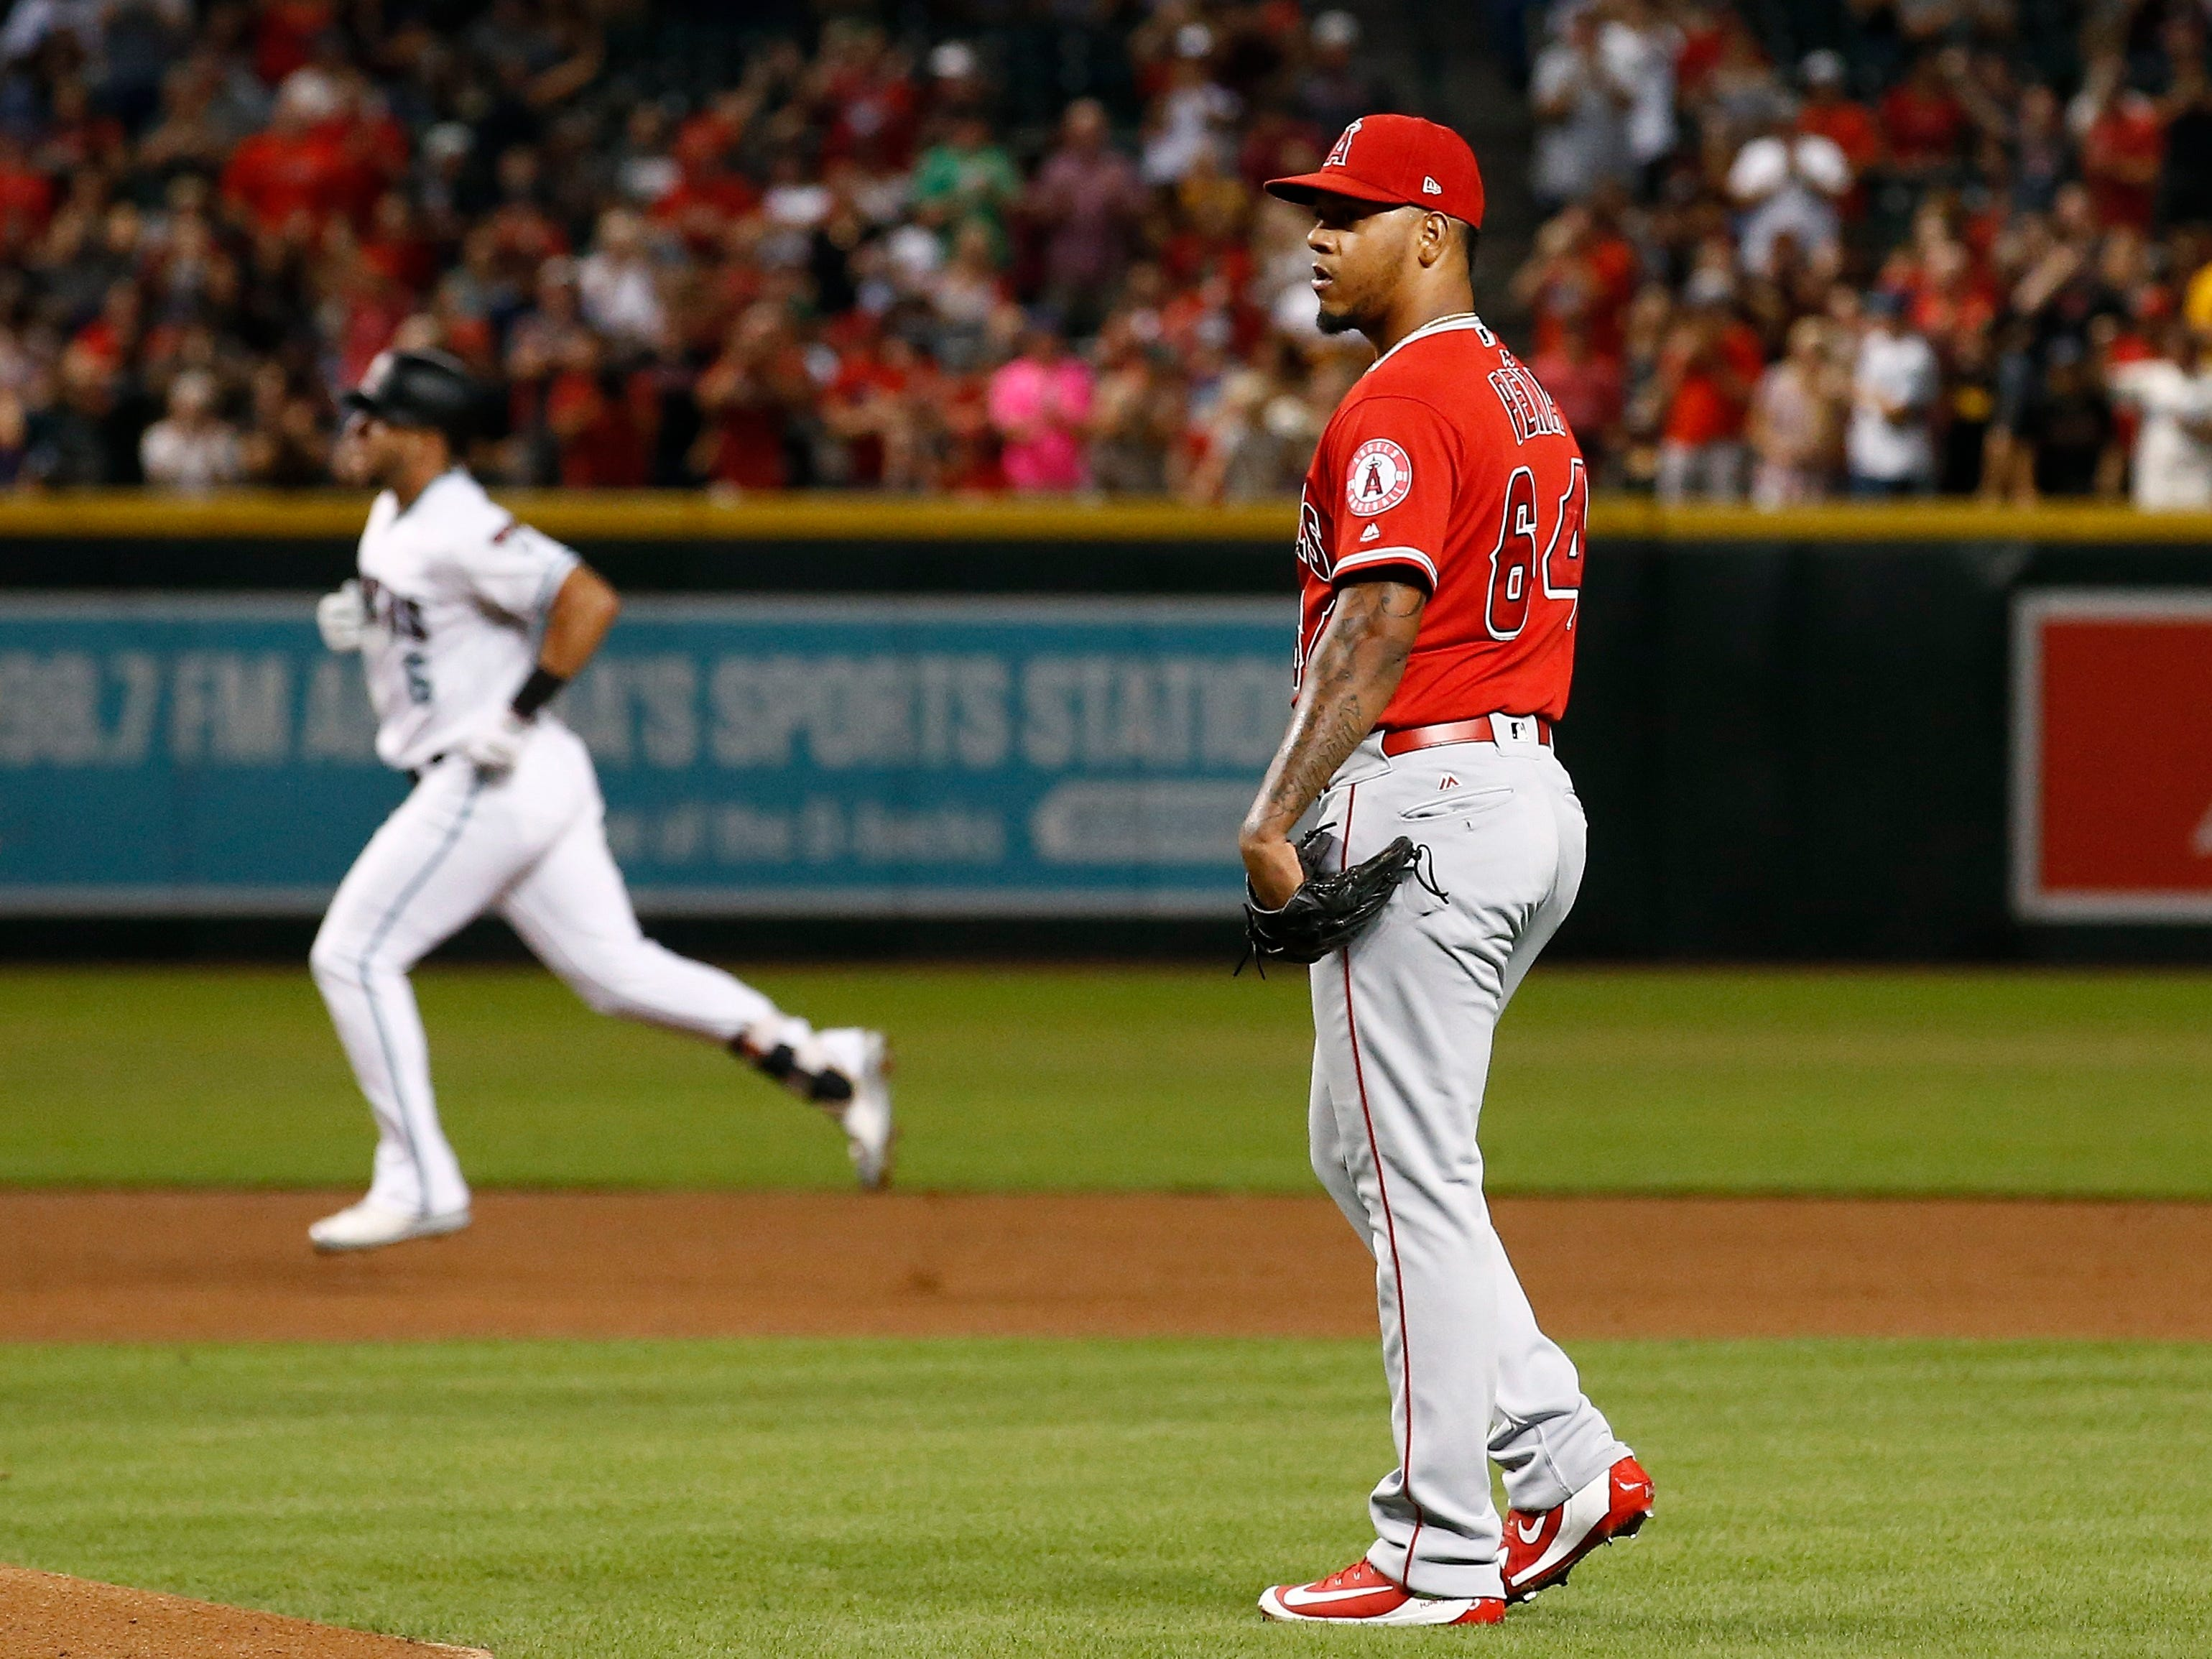 Los Angeles Angels pitcher Felix Pena, right, waits for a new baseball after giving up a two-run home run to Arizona Diamondbacks' David Peralta, left, during the first inning of a baseball game, Tuesday, Aug. 21, 2018, in Phoenix.